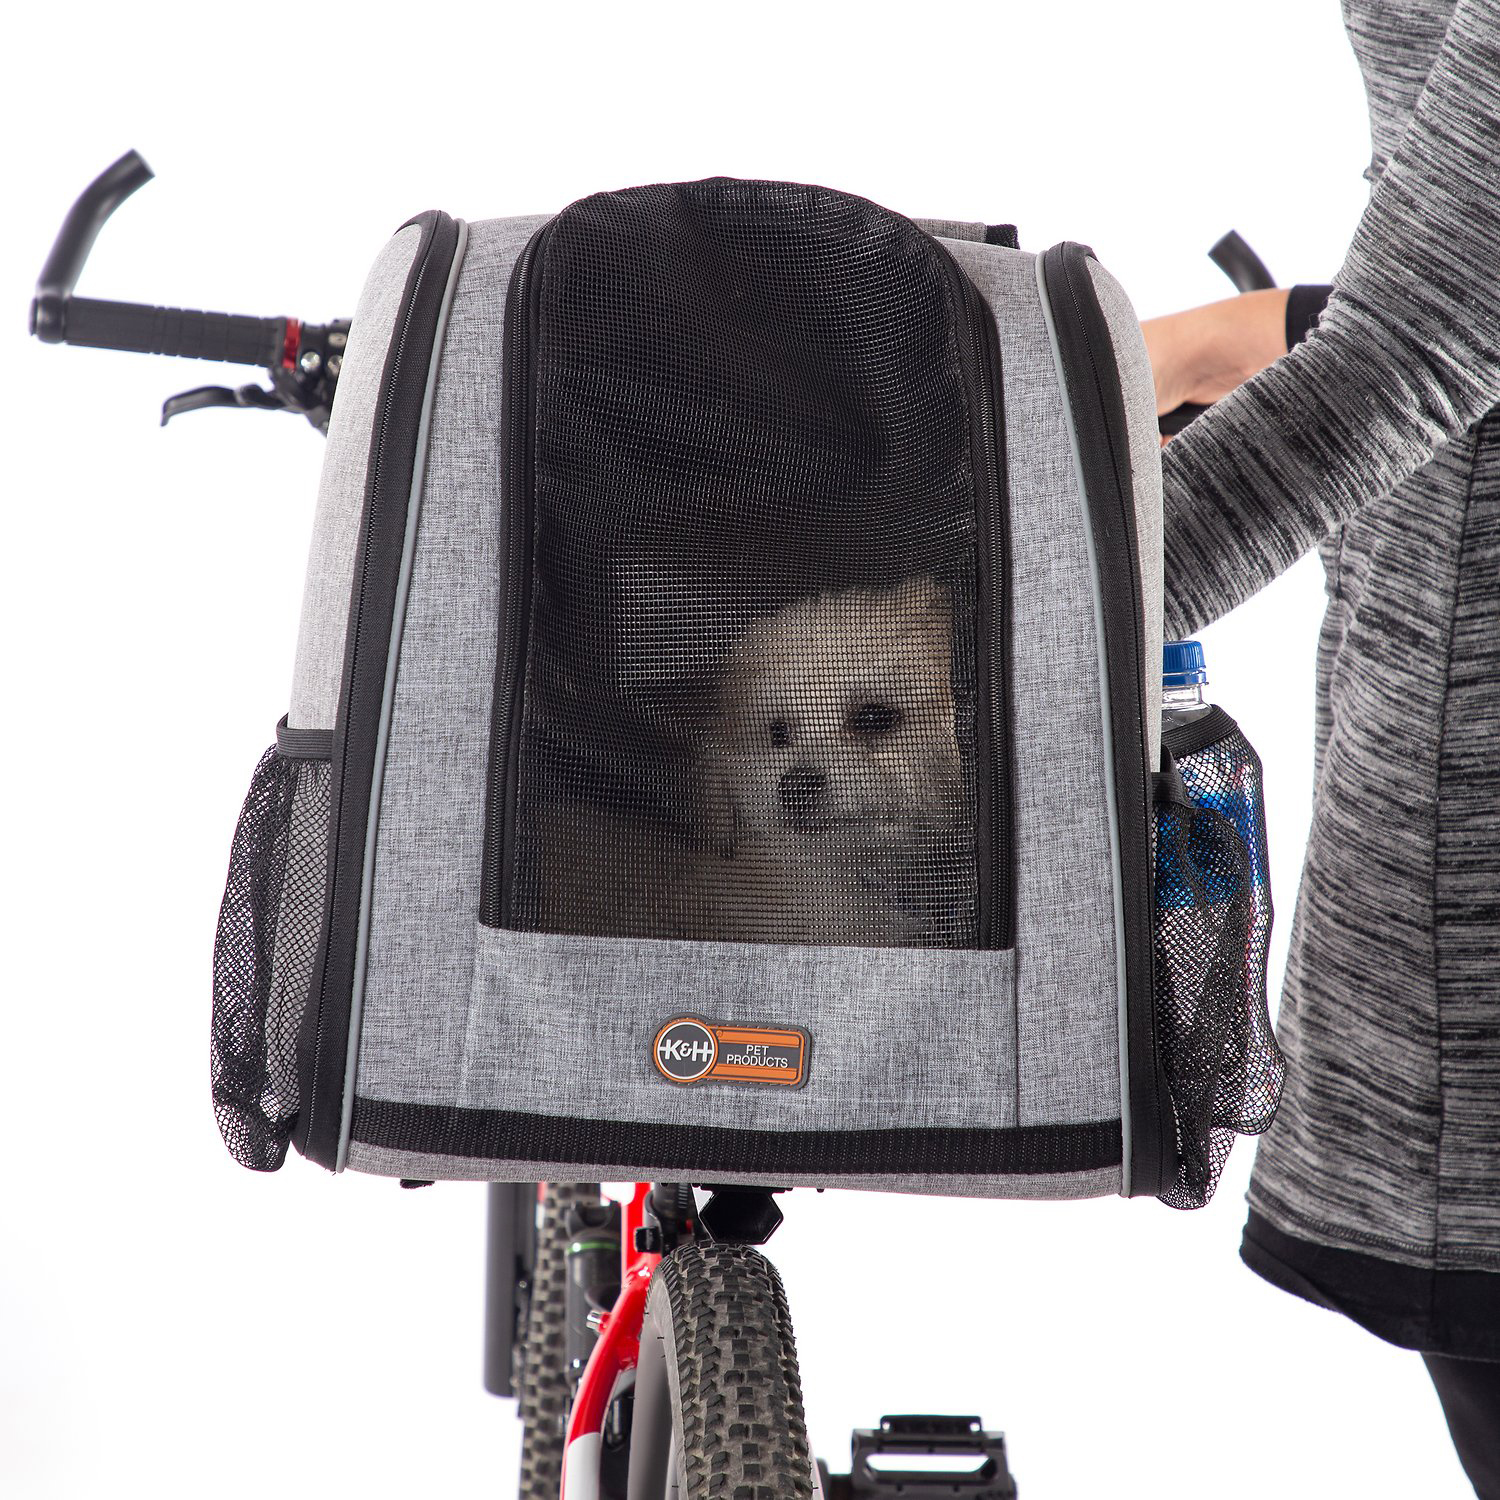 k-and-h-pet-products-travel-bike-dog-backpack